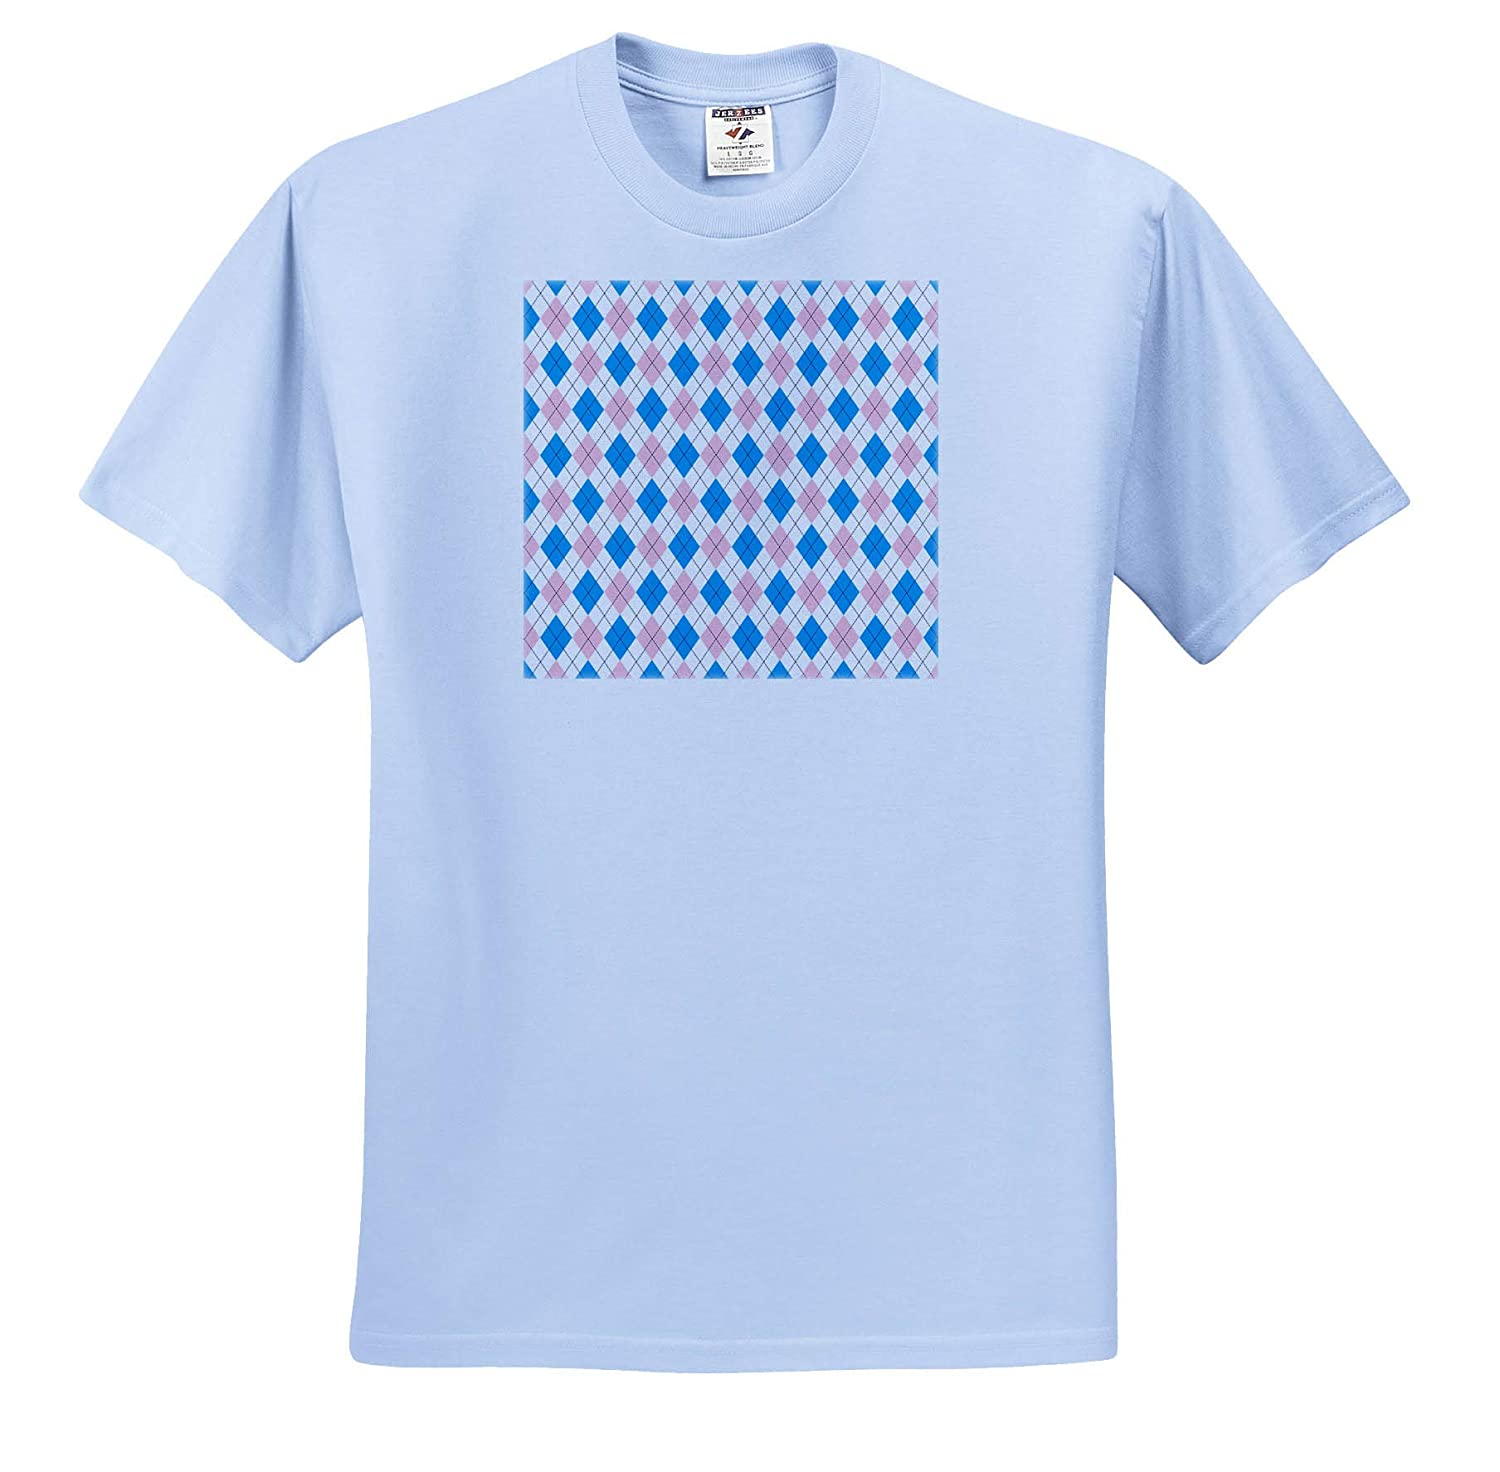 Blue Argyle Decorative Pattern Image of Pink Pattern Geometrical ts/_319779 3dRose Alexis Design Adult T-Shirt XL